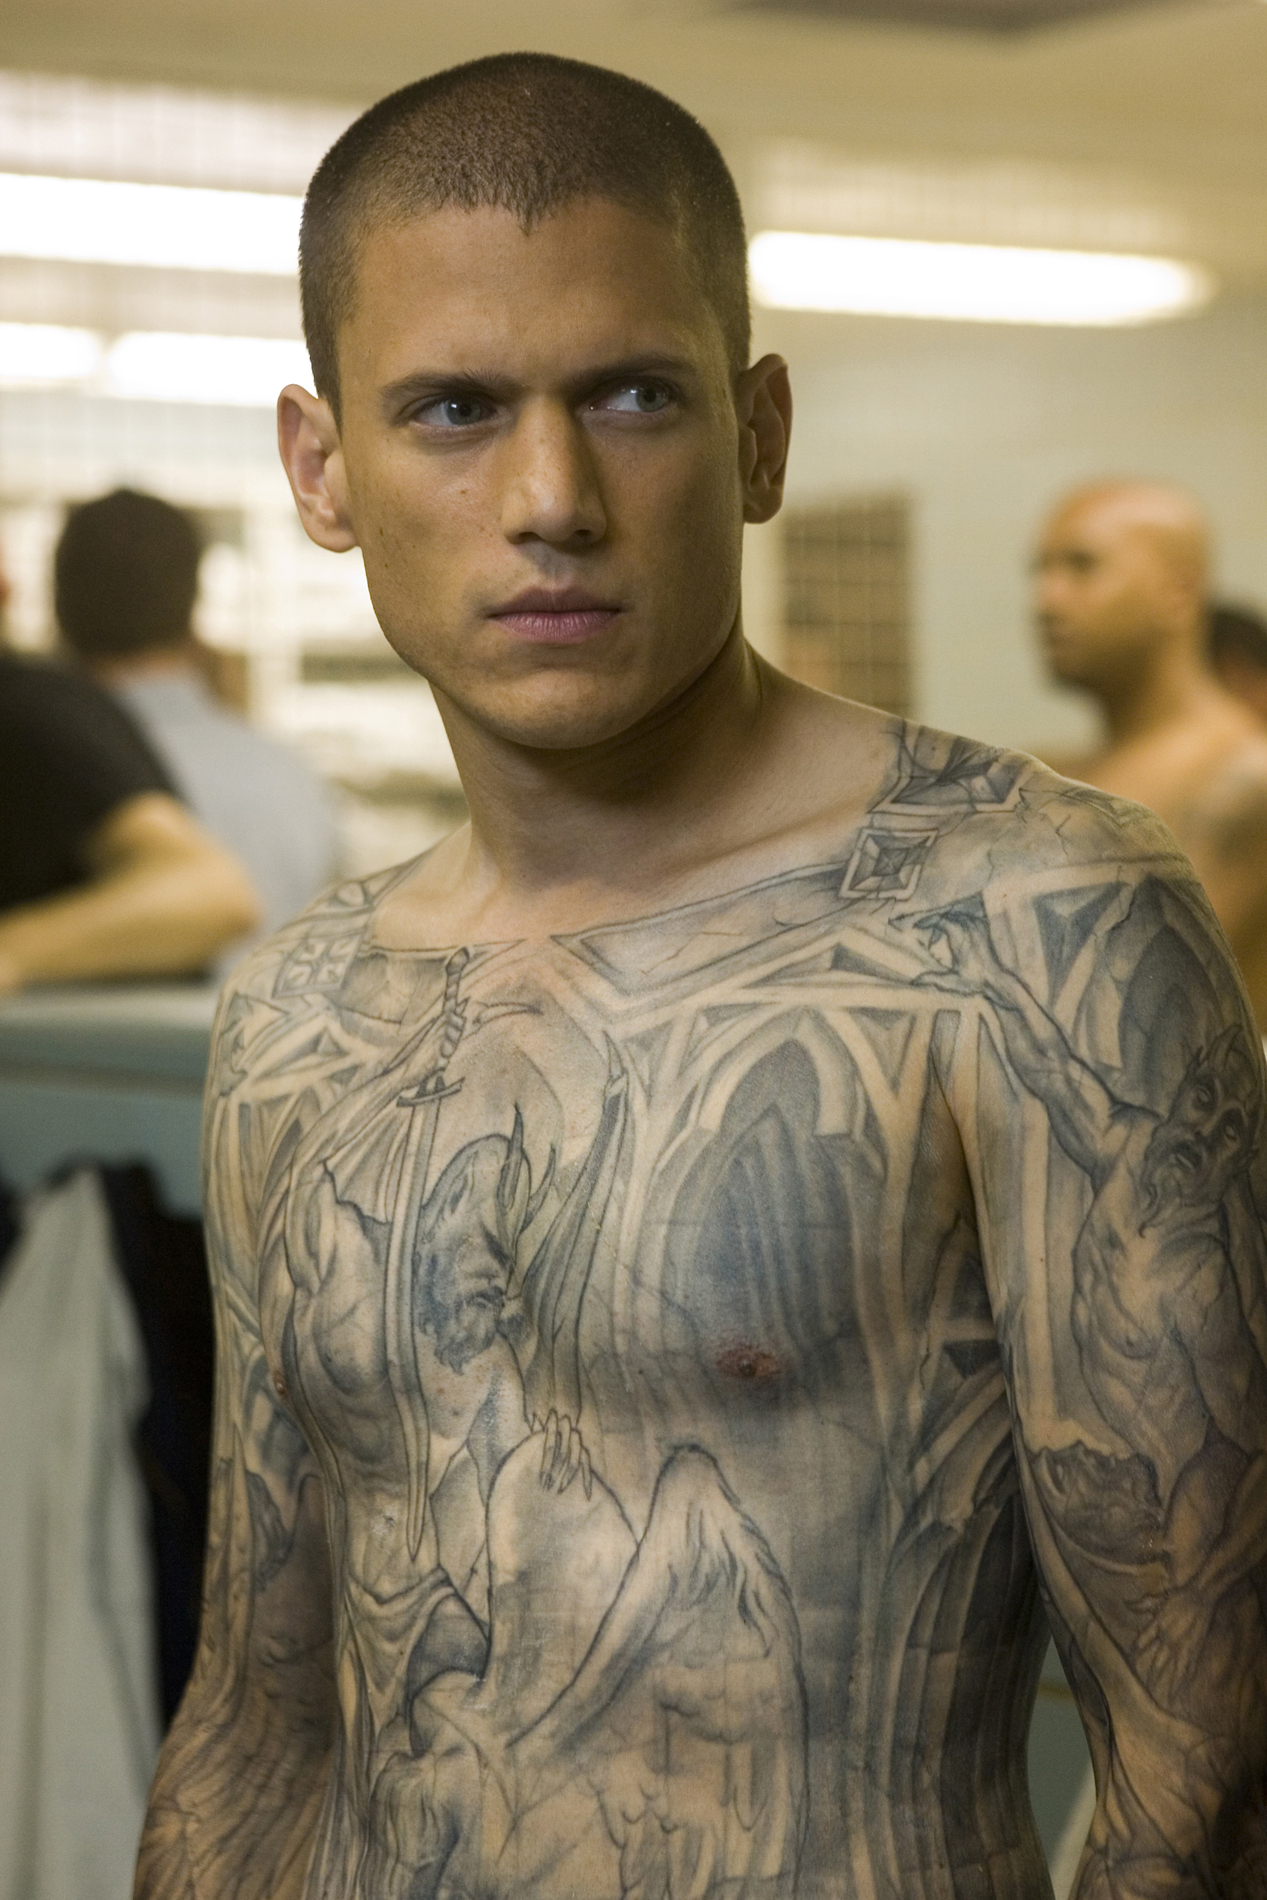 Wentworth Miller Prison Break Tattoo